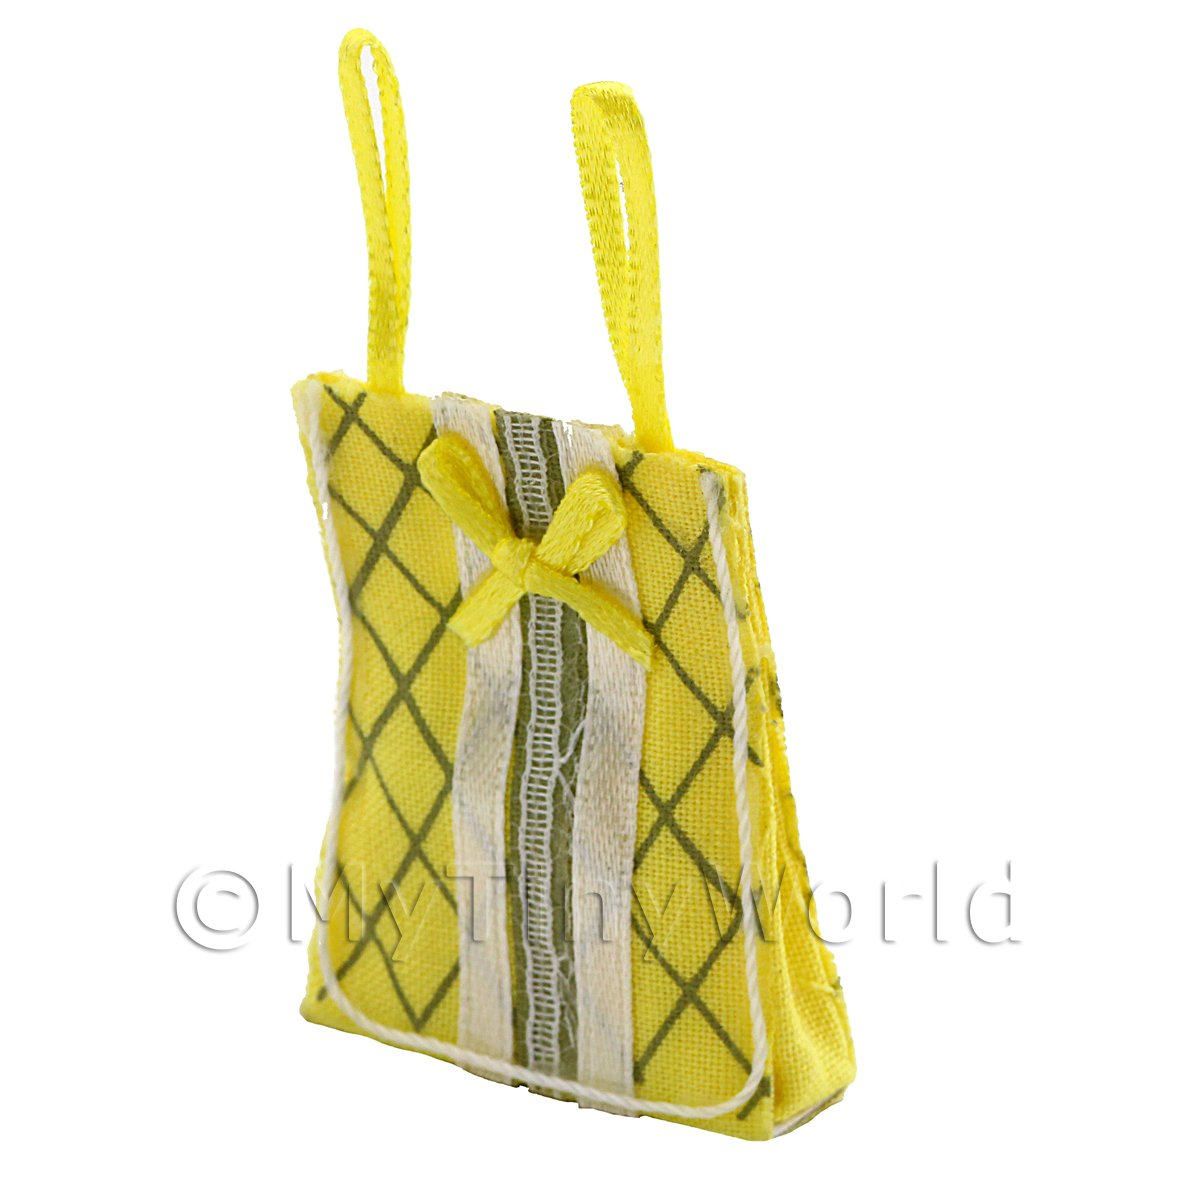 Dolls House Miniature Yellow Fabric Shopping Bag